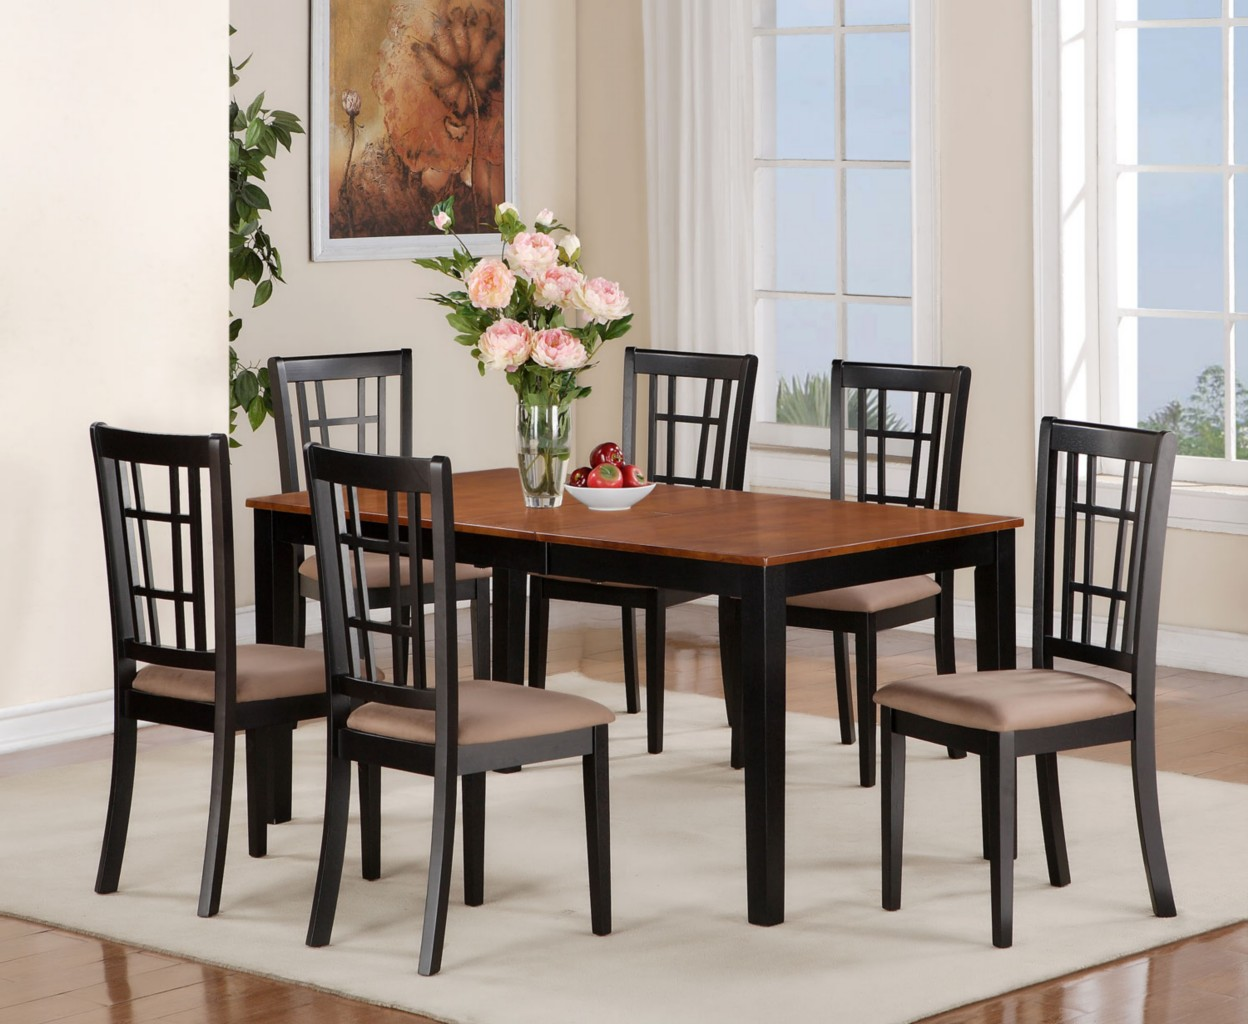 5pc dinette kitchen dining set rectangular table 4 for Kitchen dining sets